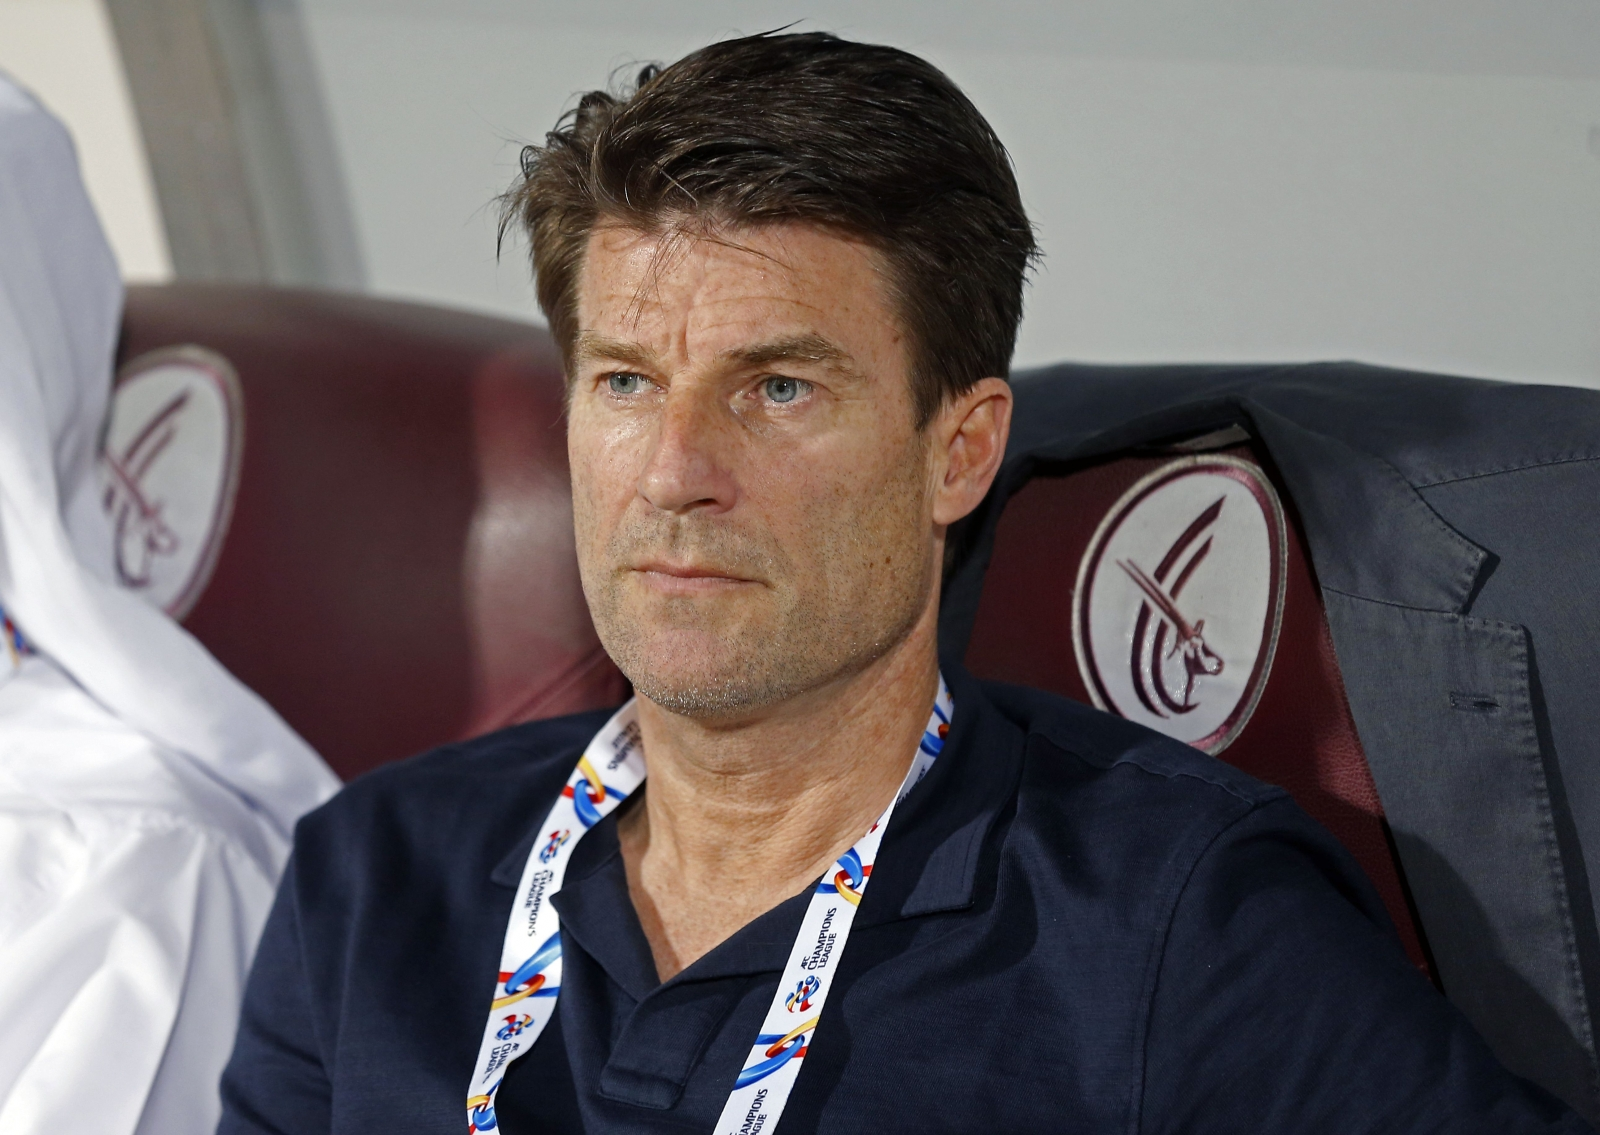 New Leeds manager Michael Laudrup rules out replacing Garry Monk